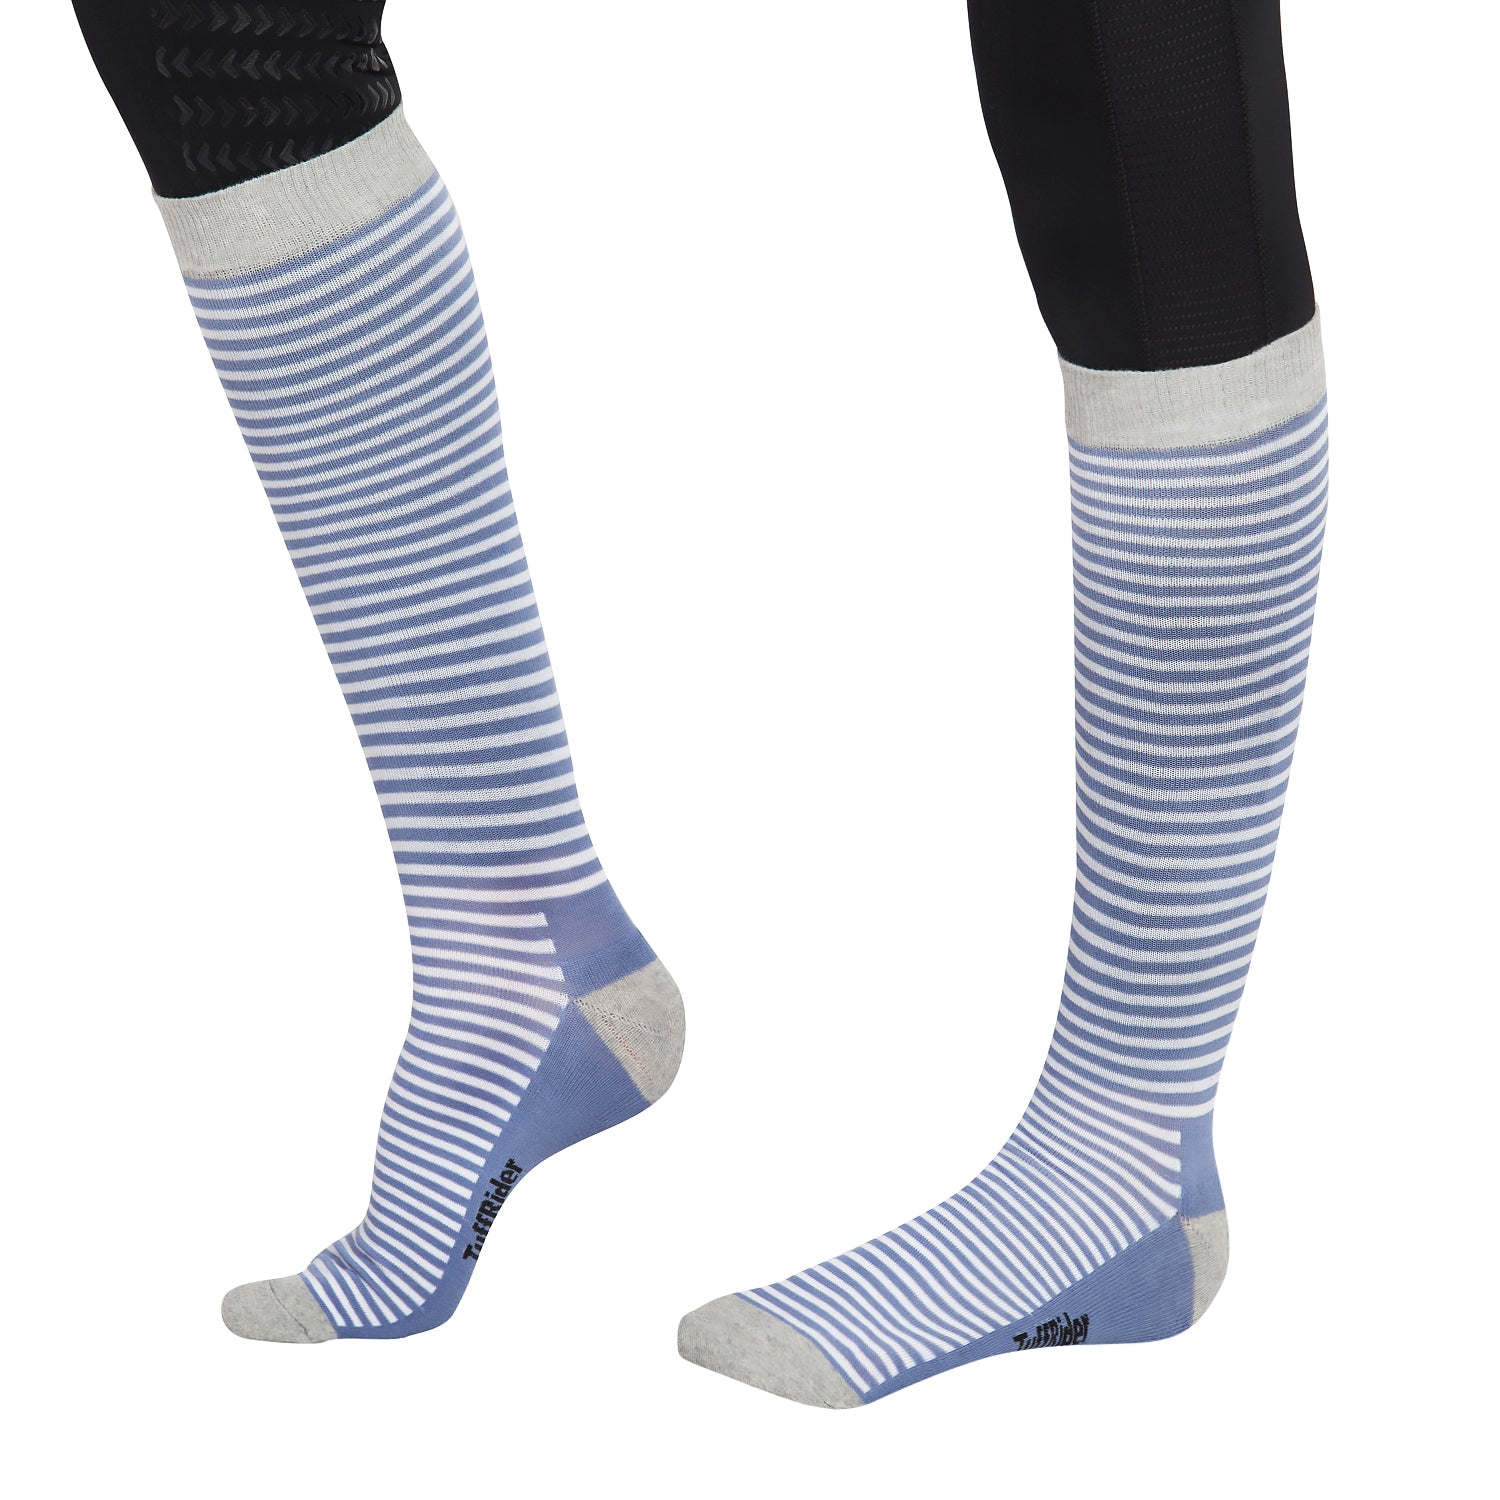 TuffRider Ladies Hera Knee Hi Socks - 3 Pack_1